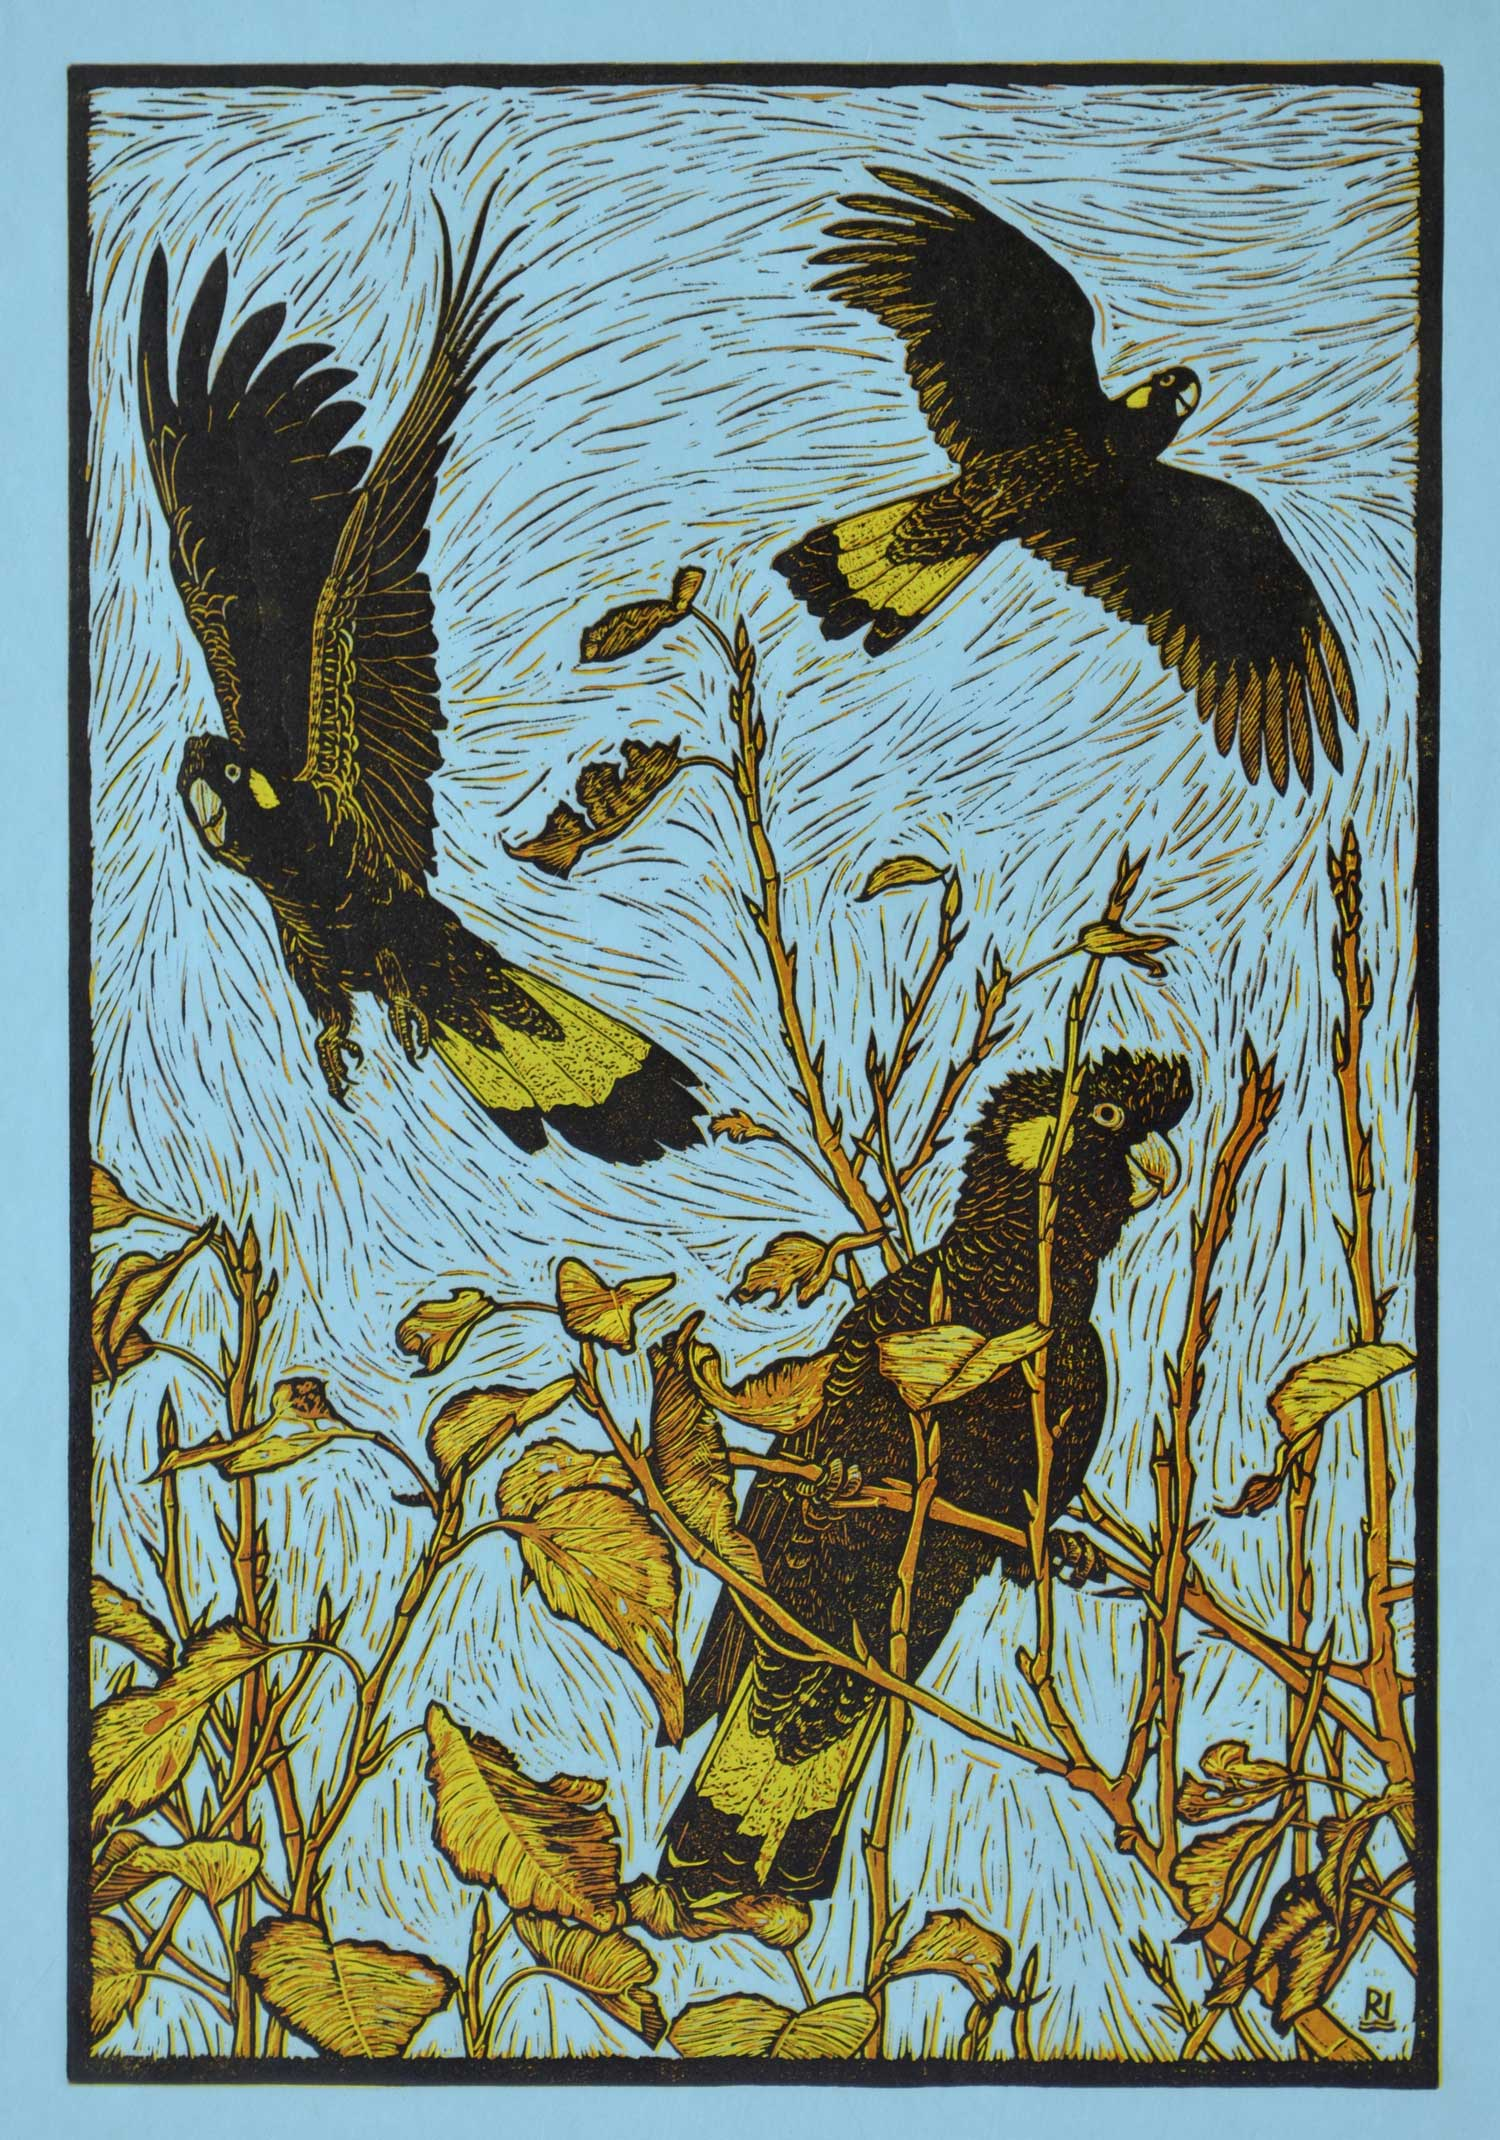 THREE YELLOW-TAILED BLACK COCKATOOS (reduction version)  53.5 X 36.5 CM EDITION OF 7  REDUCTION LINOCUT ON HANDMADE JAPANESE PAPER  $1,300